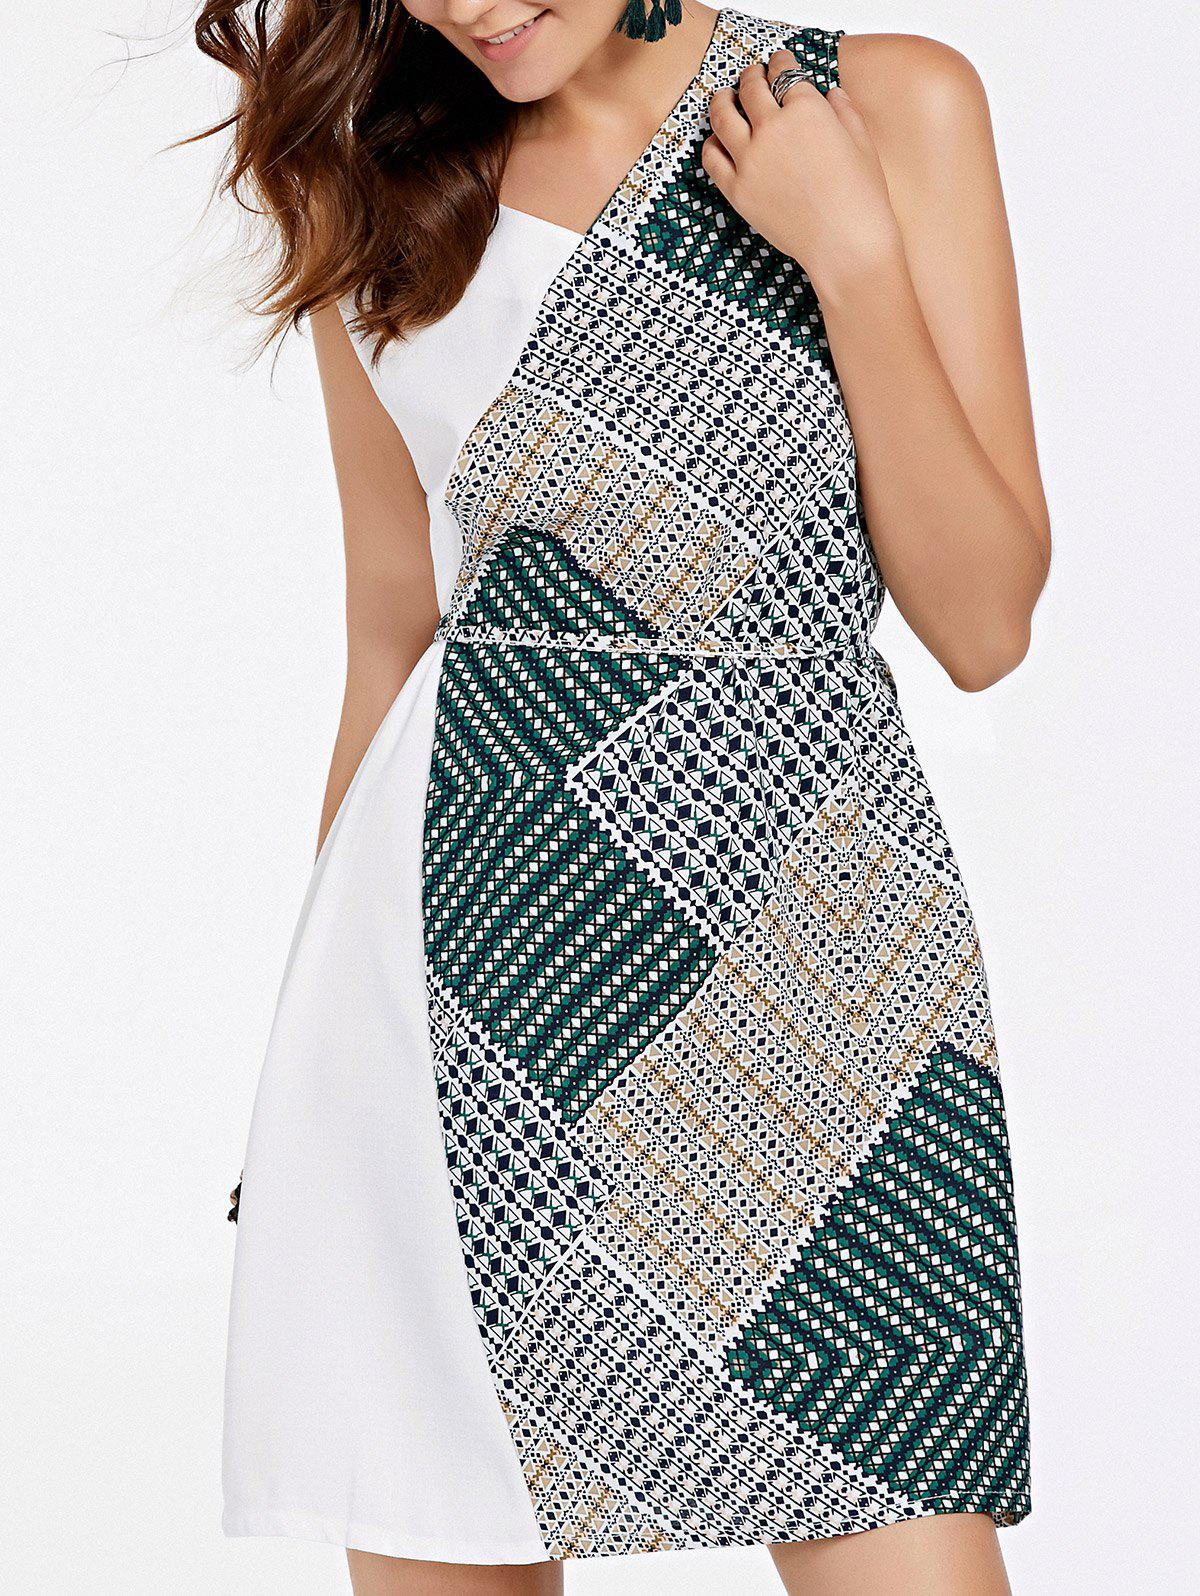 Stylish Women's Sleeveless Patchwork Design Self-Tie Dress - ONE SIZE(FIT SIZE XS TO M) GREEN